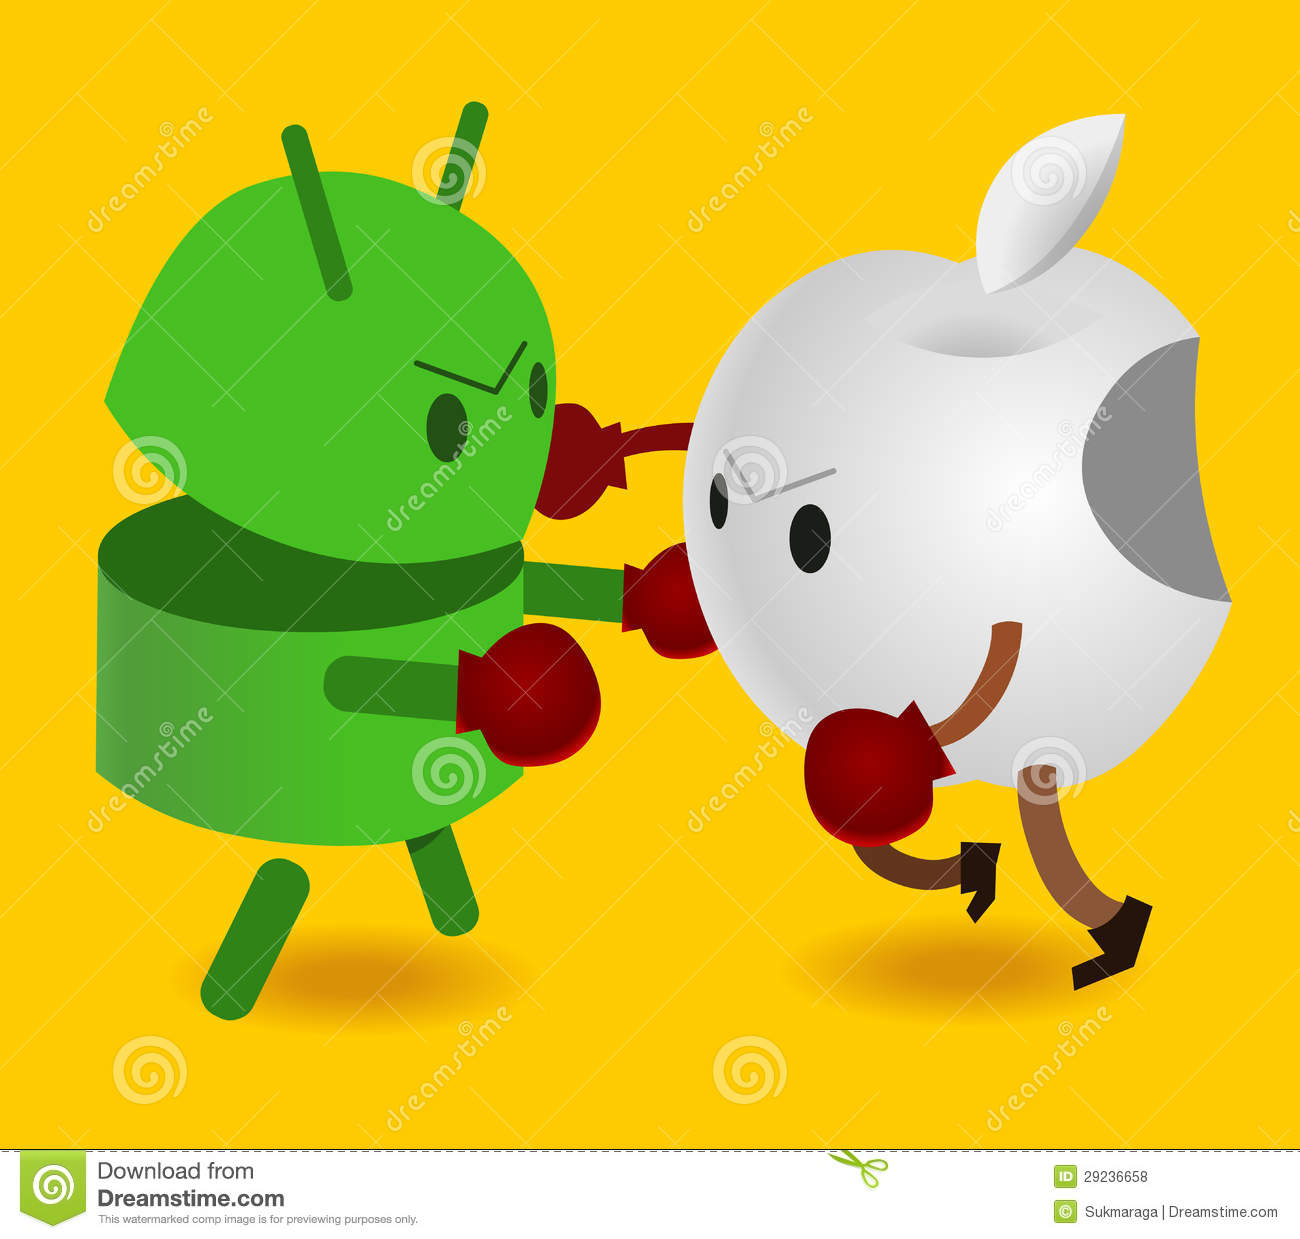 Apple vs android clipart clipart free stock Apple vs android clipart - ClipartFest clipart free stock